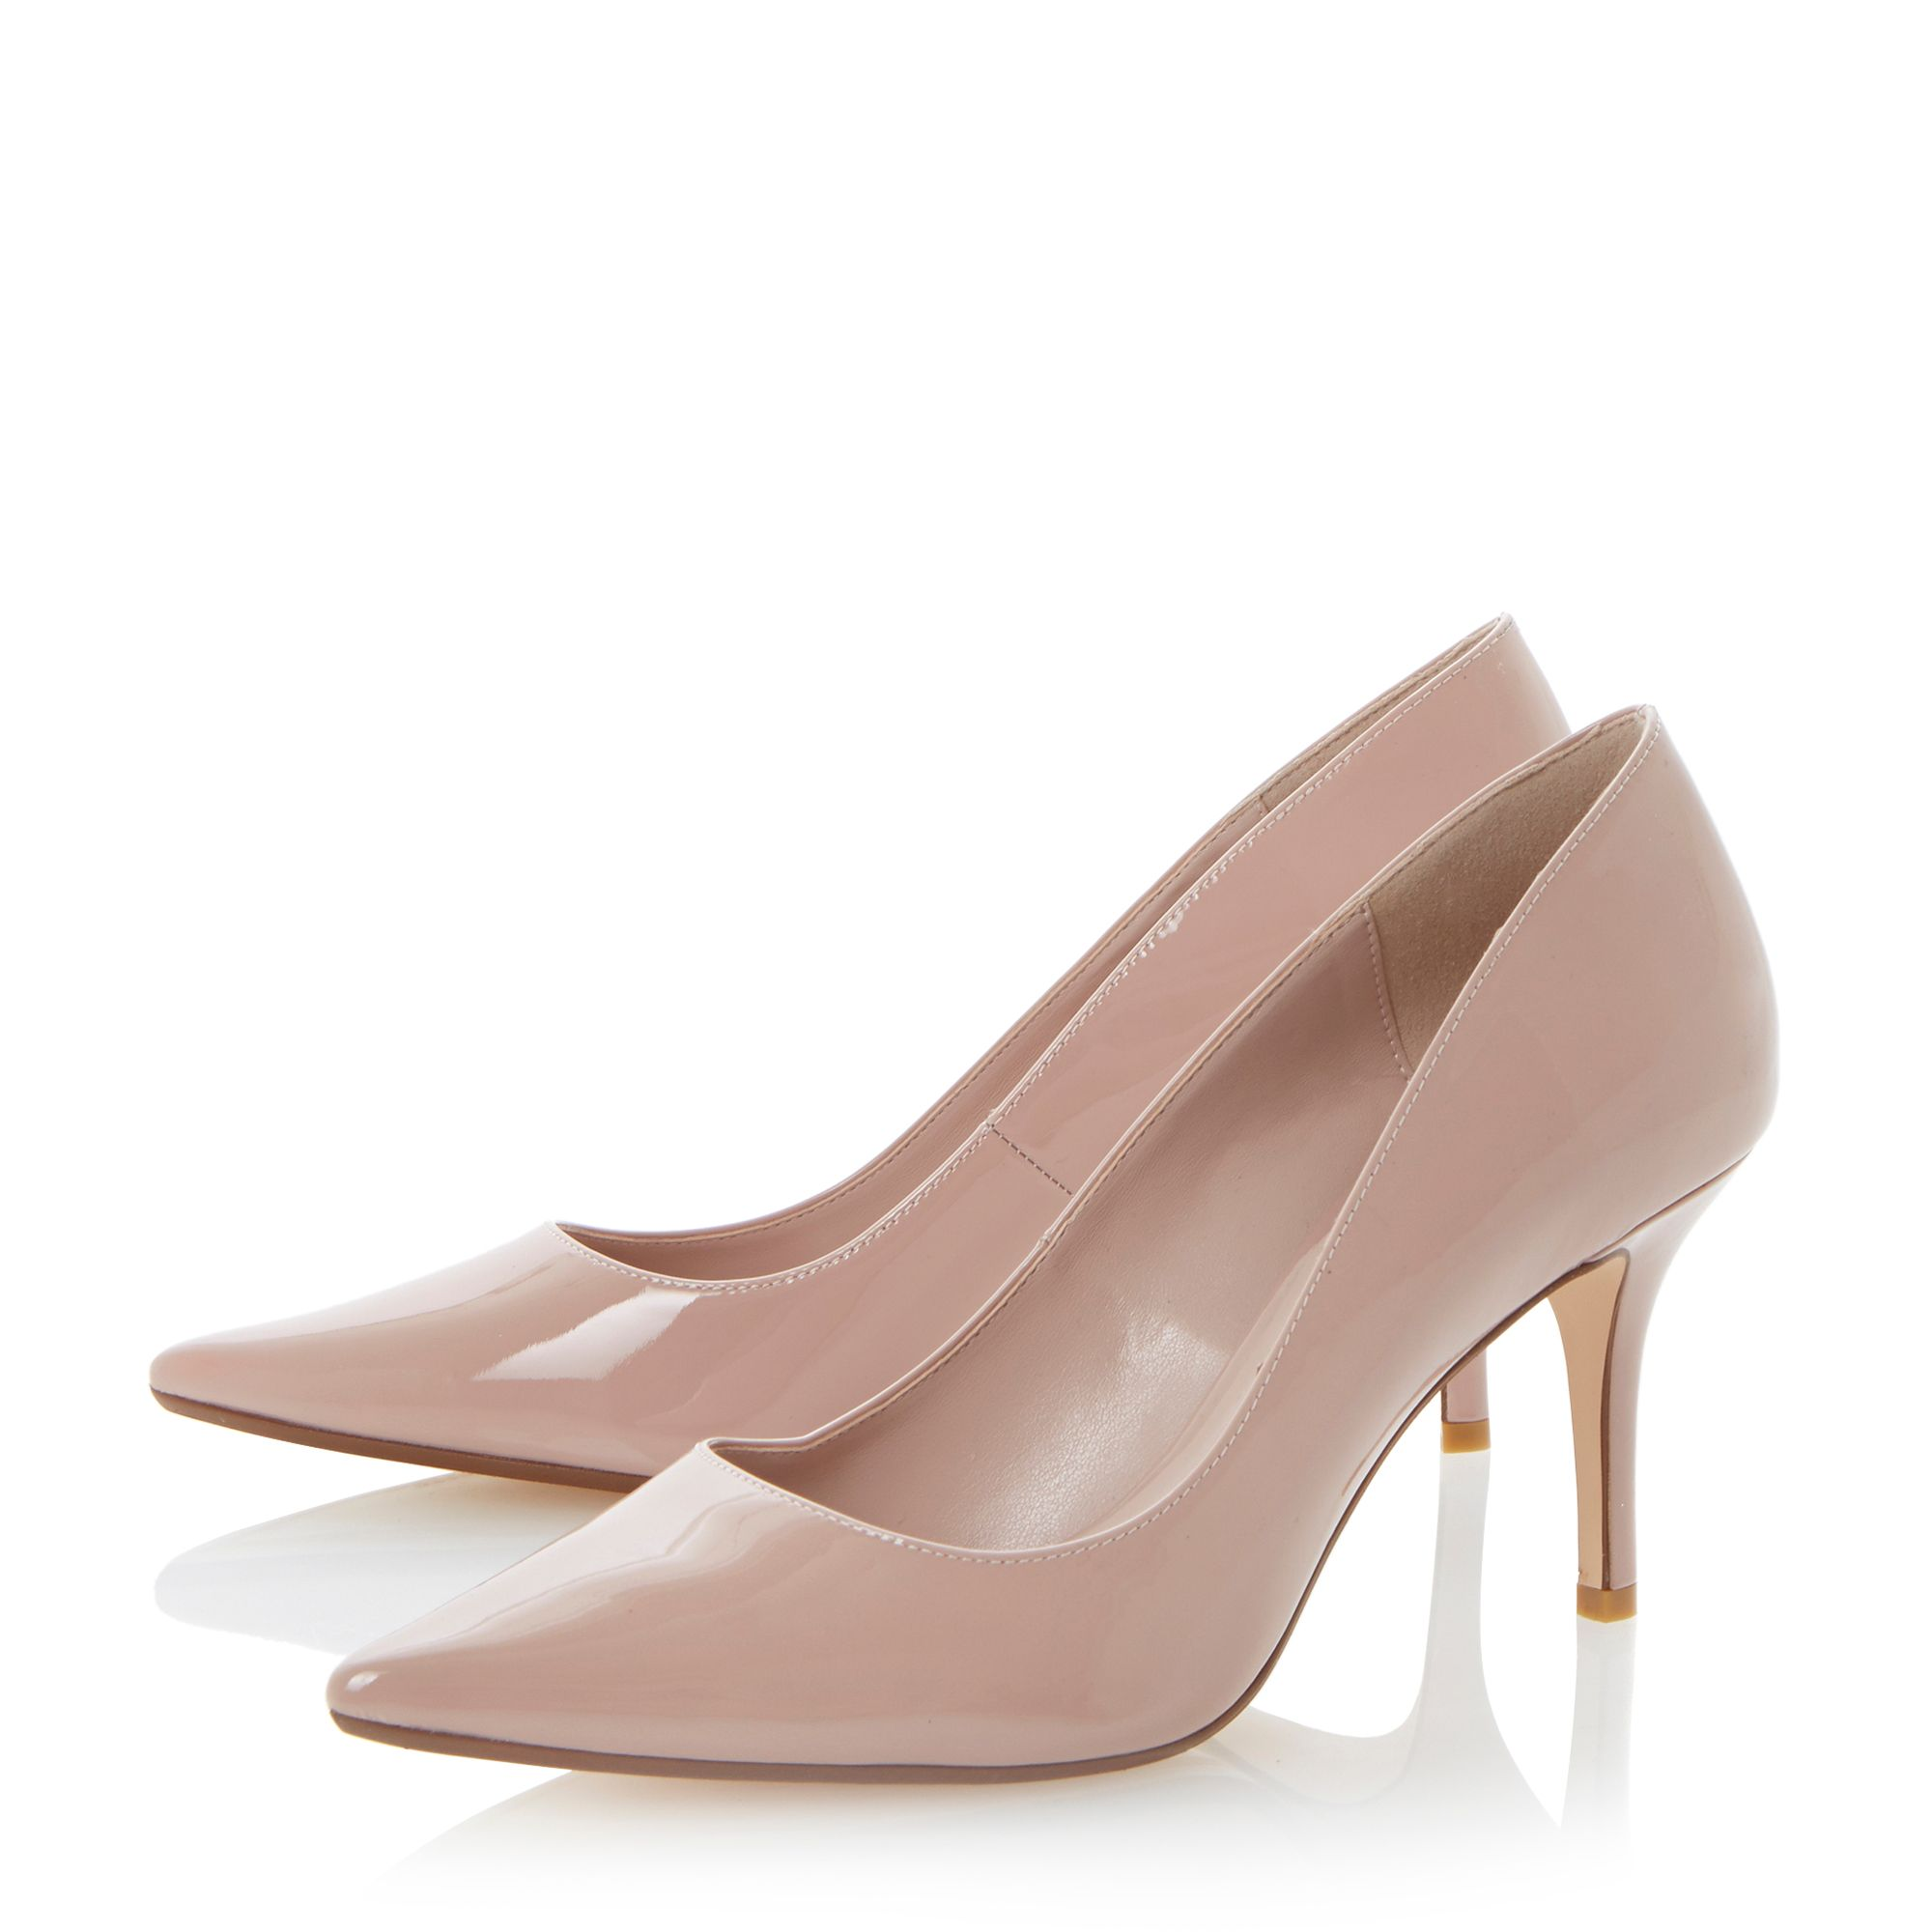 Dune Alina Pointed Toe Mid Heel Court Shoes